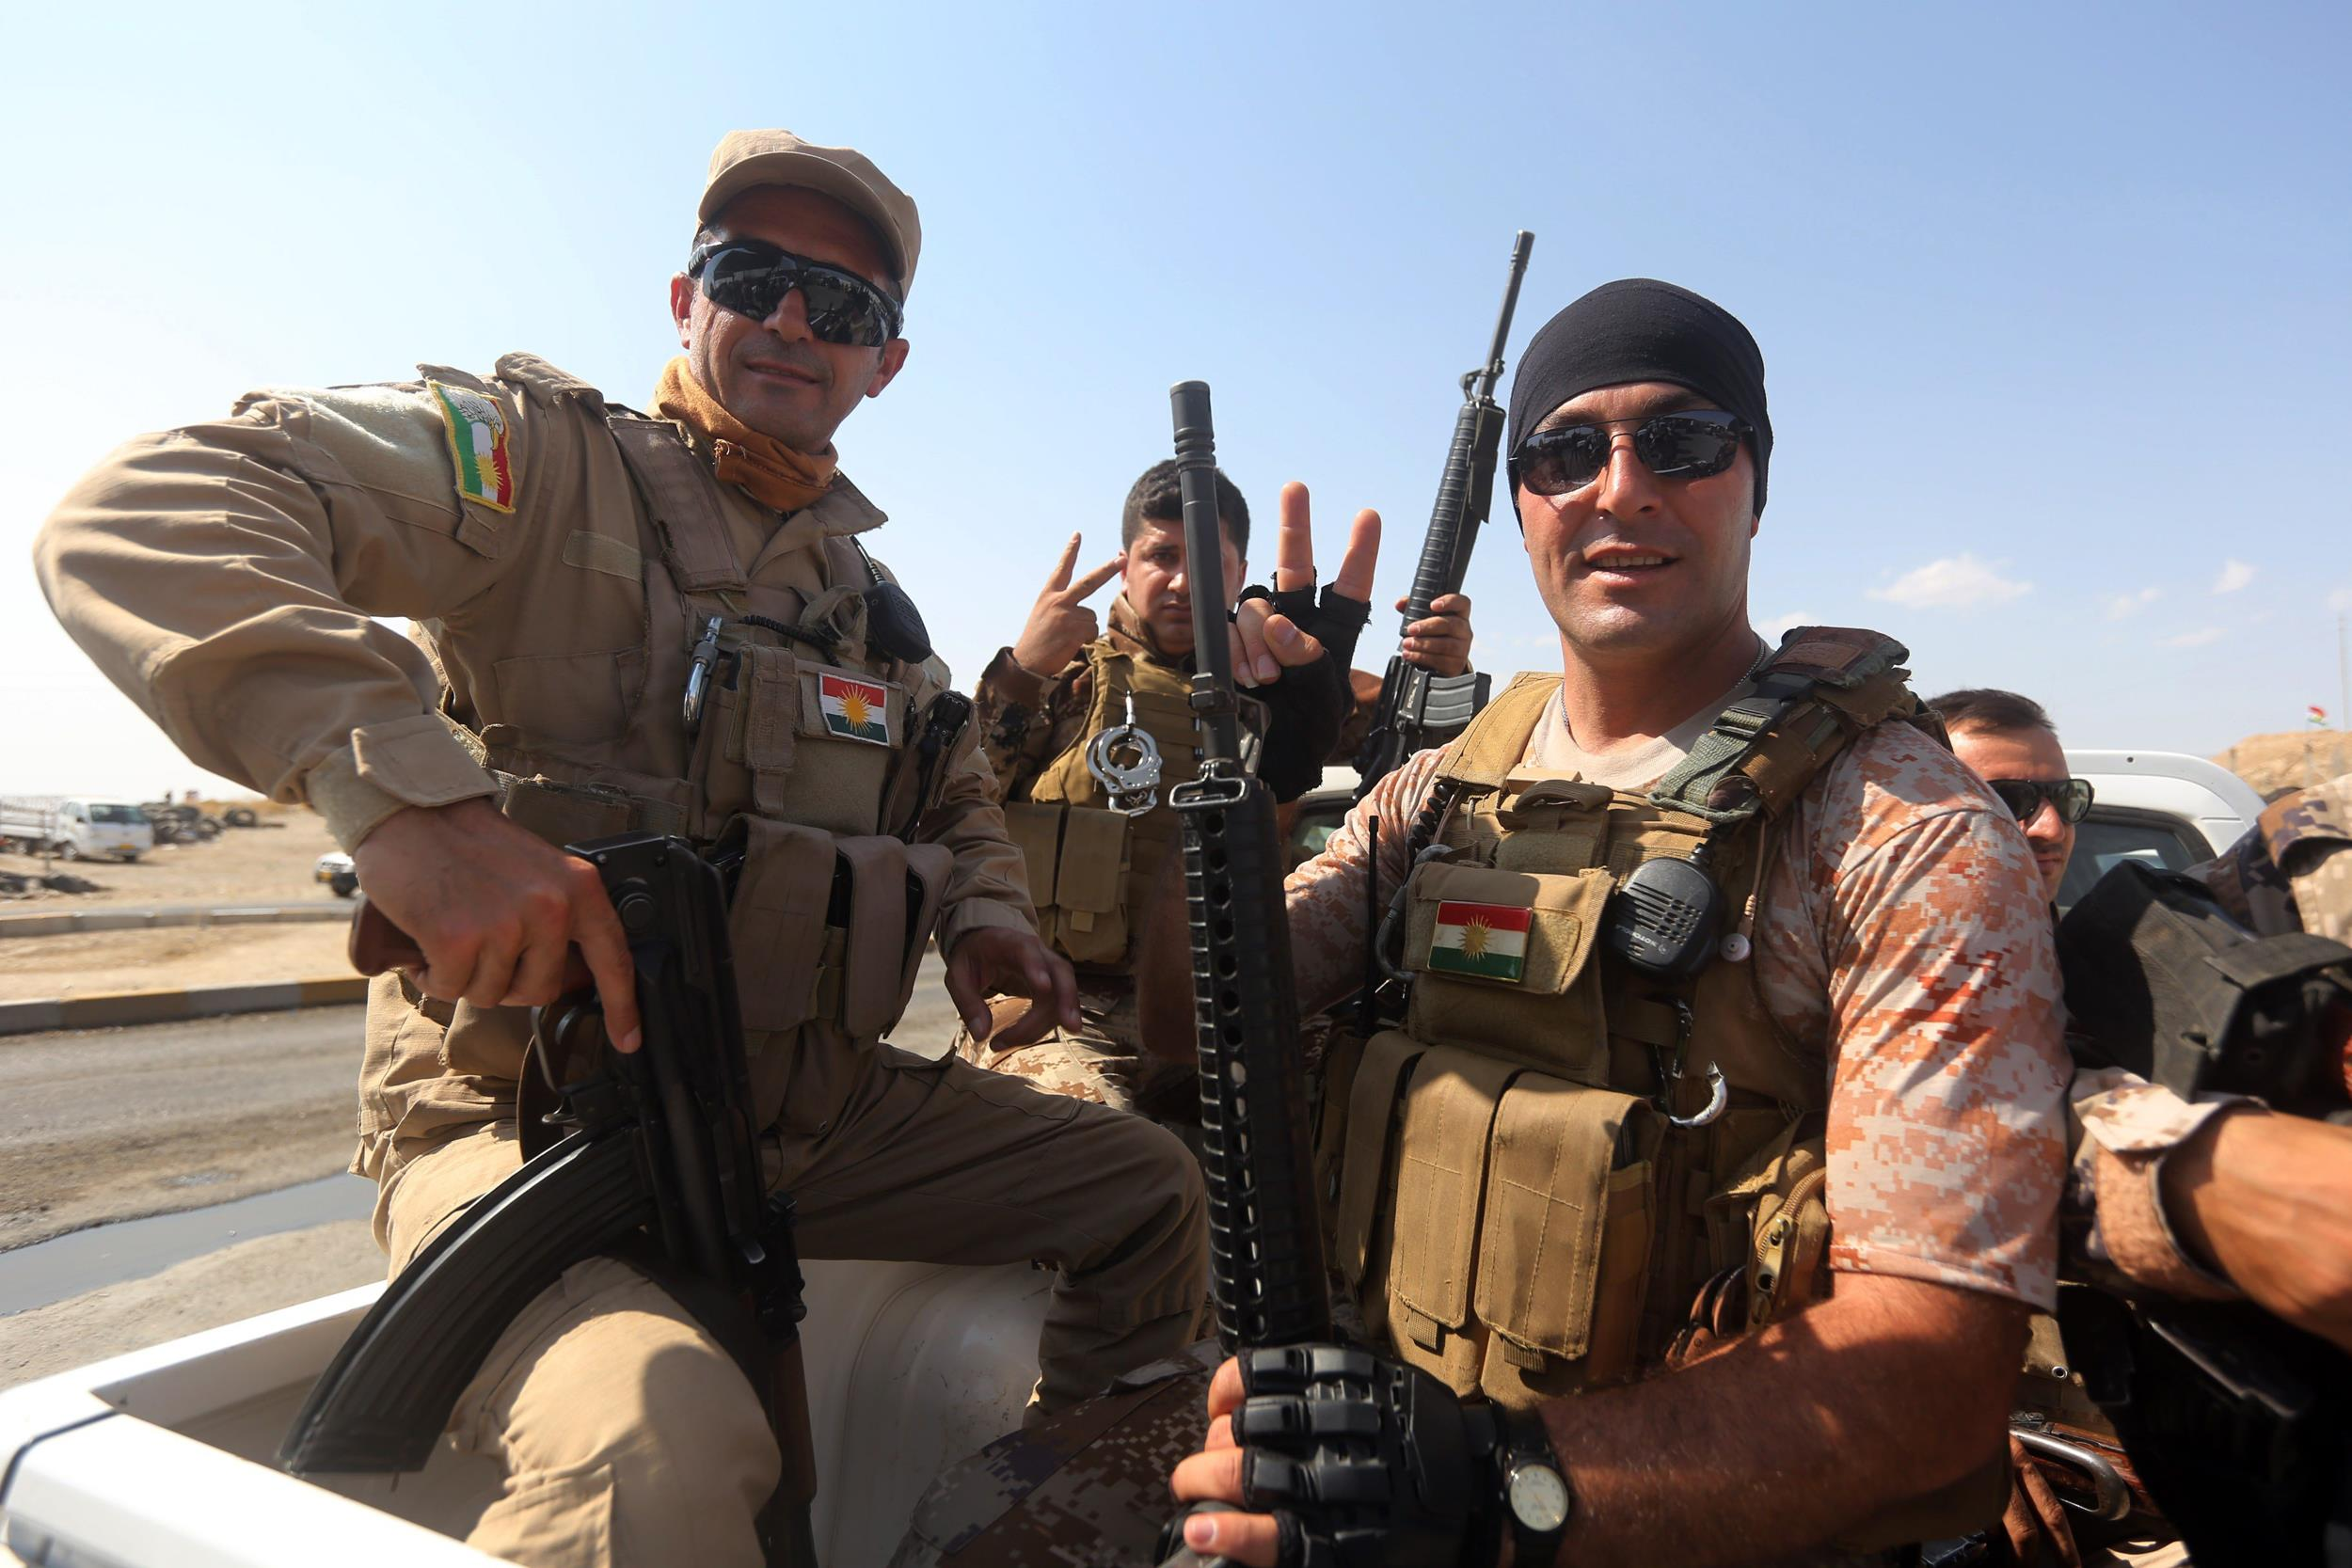 Image: Kurdish peshmerga fighters flash the sign for victory